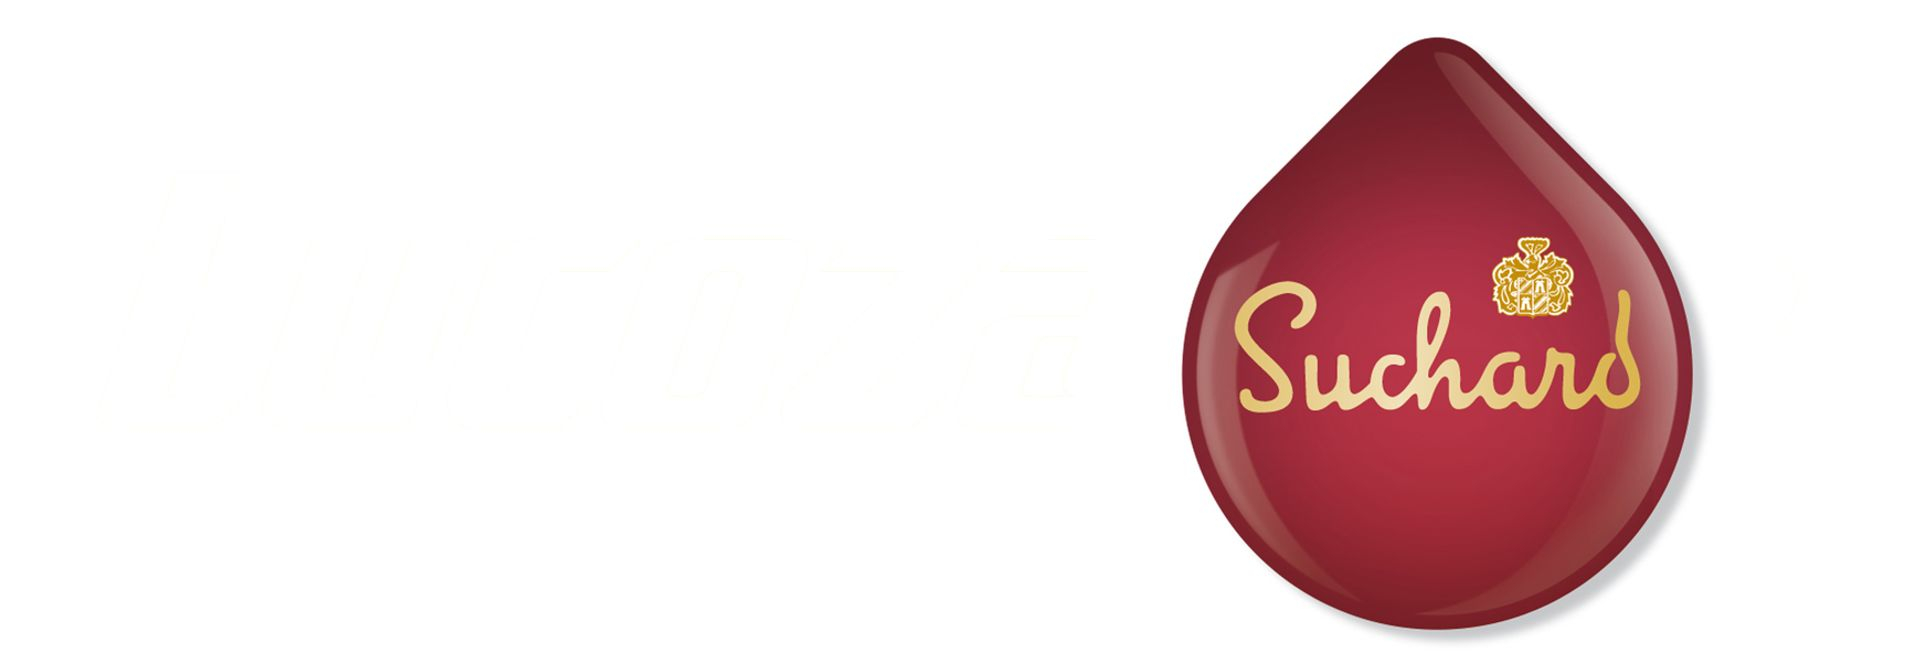 Suchard chocolate drink logo